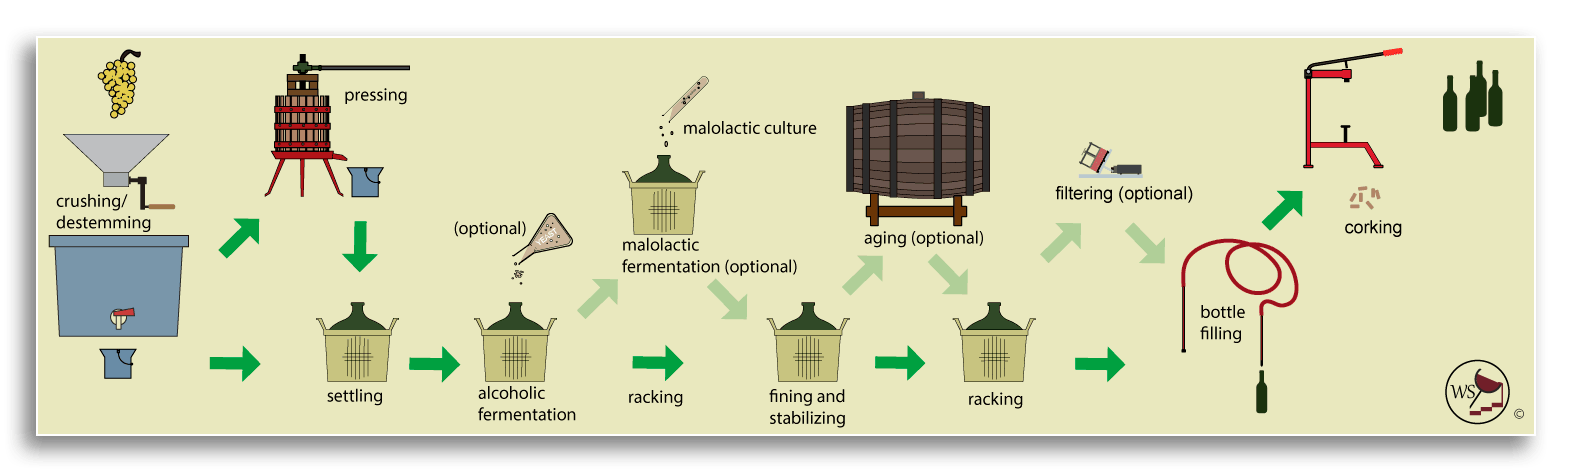 Infographic workflow showing how to make wine from fresh white grapes